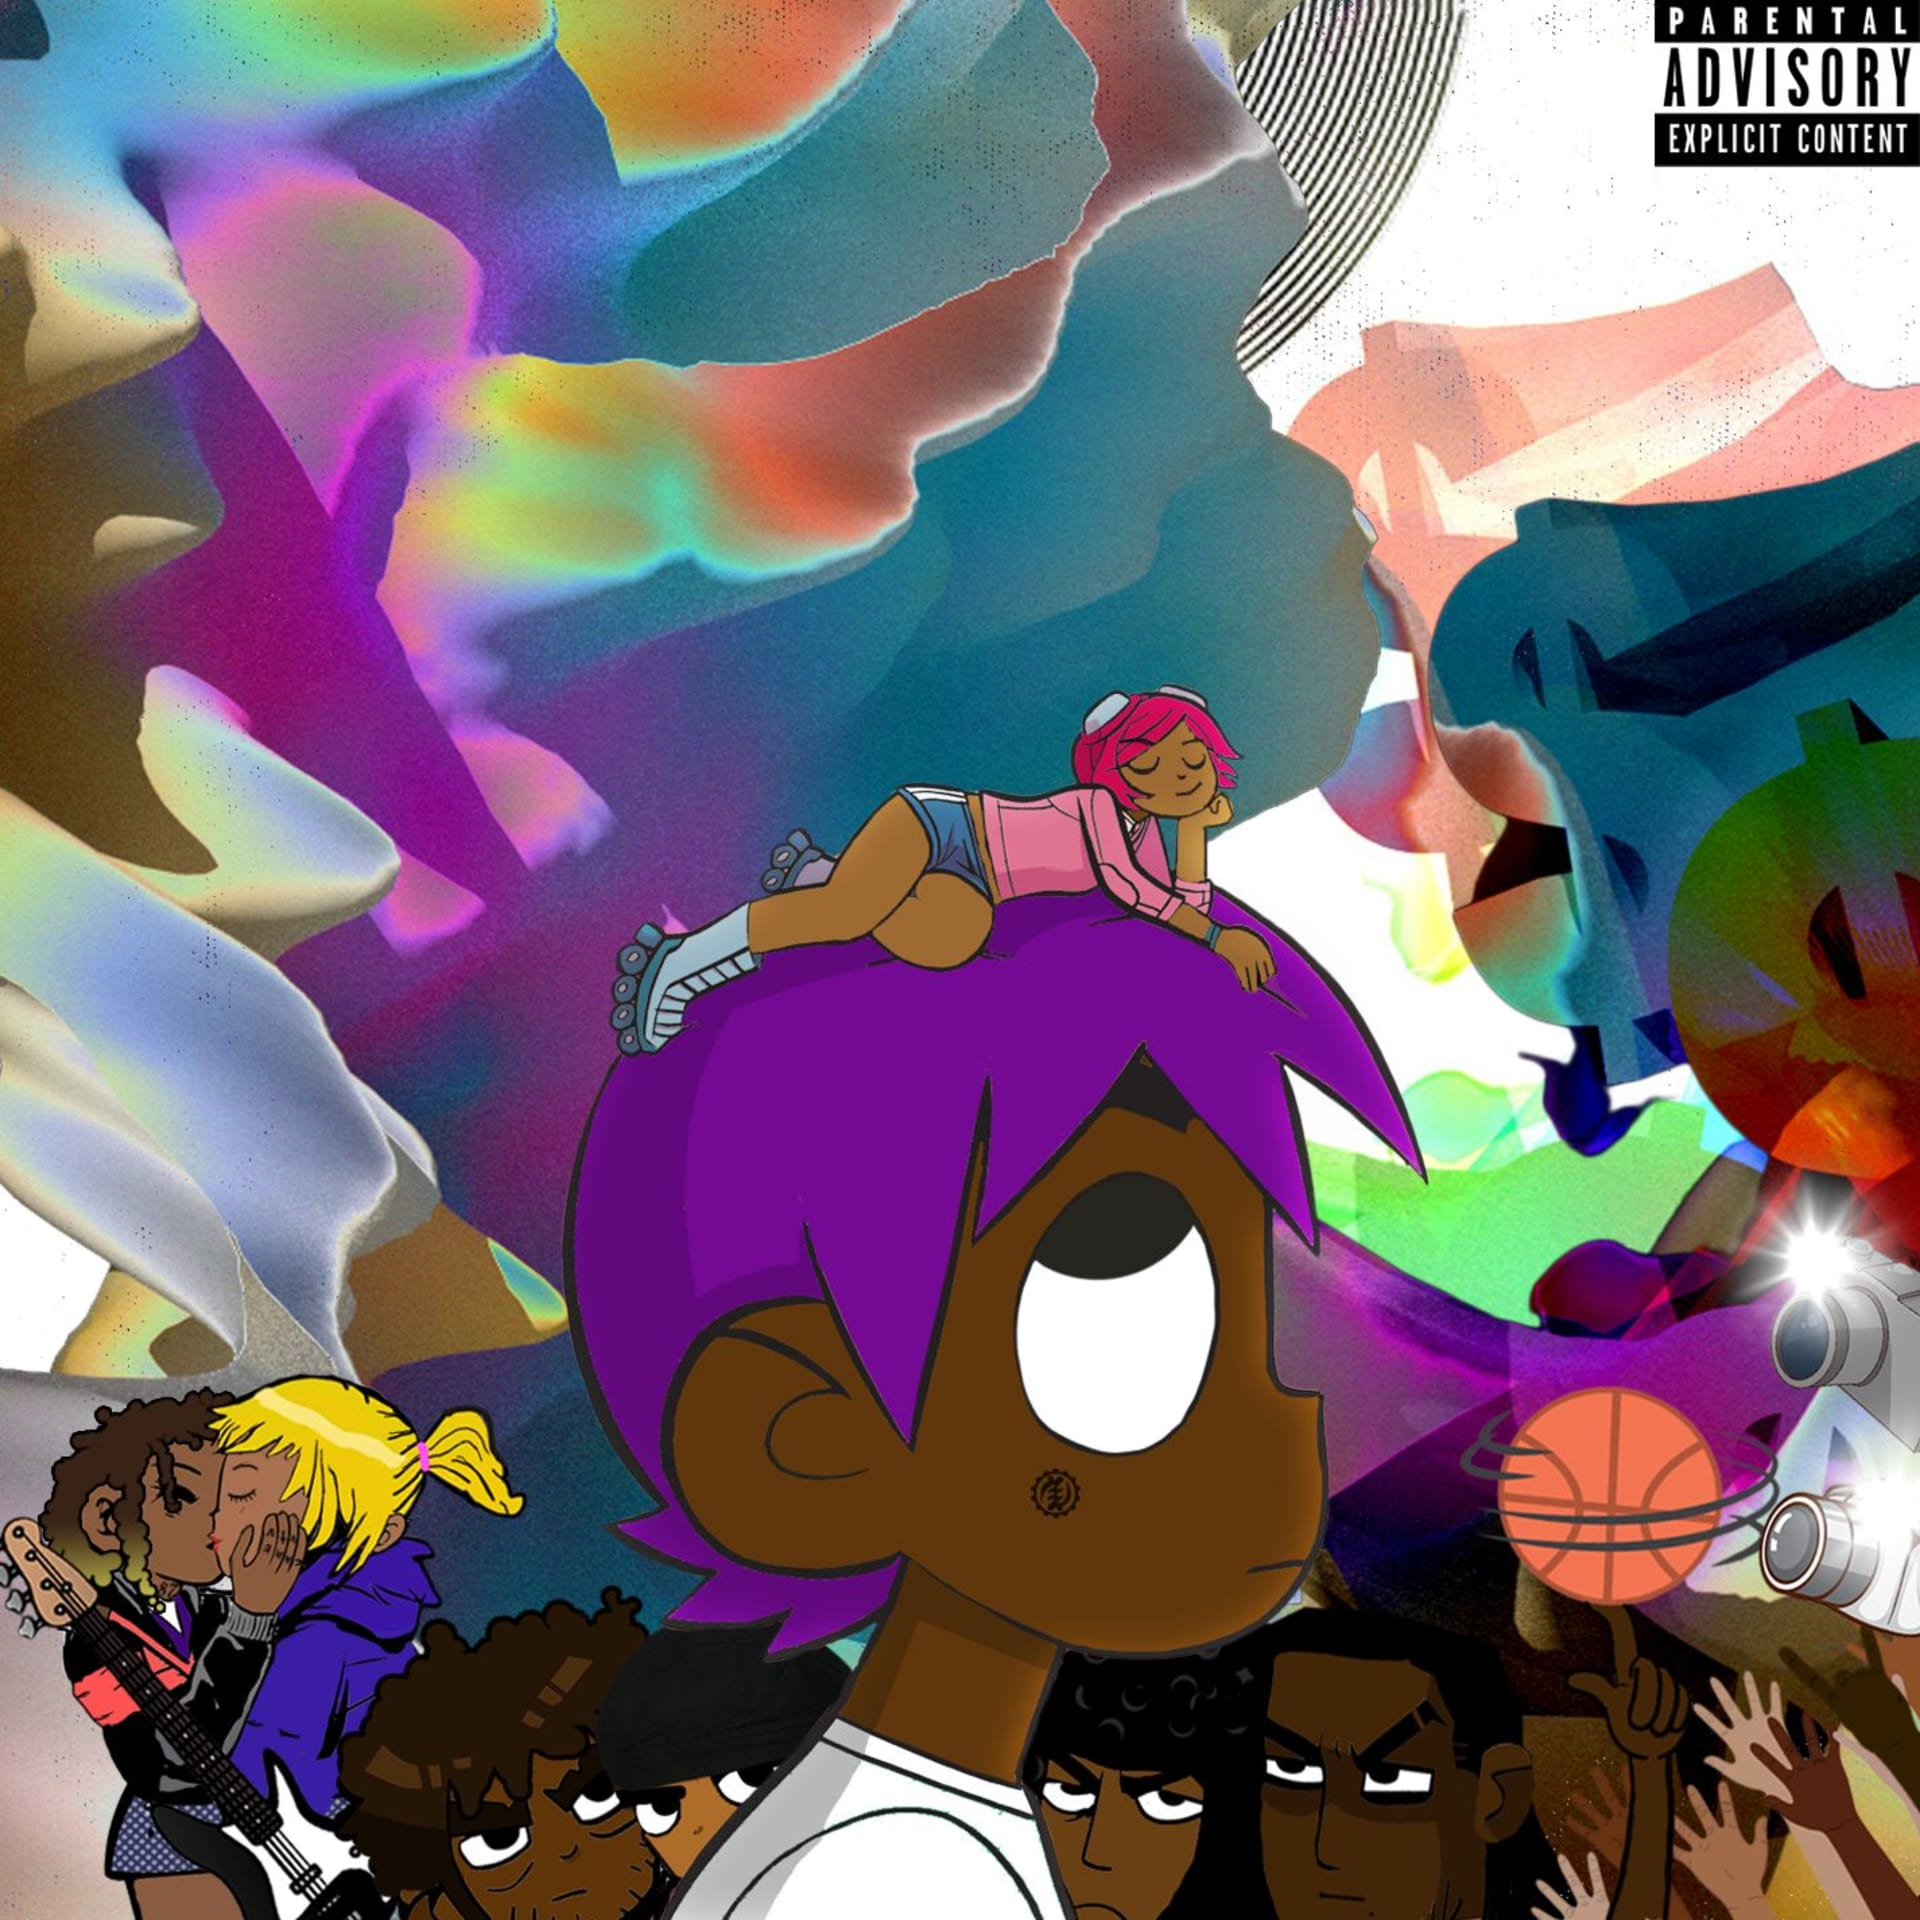 Lil Uzi Vert Vs The World Big